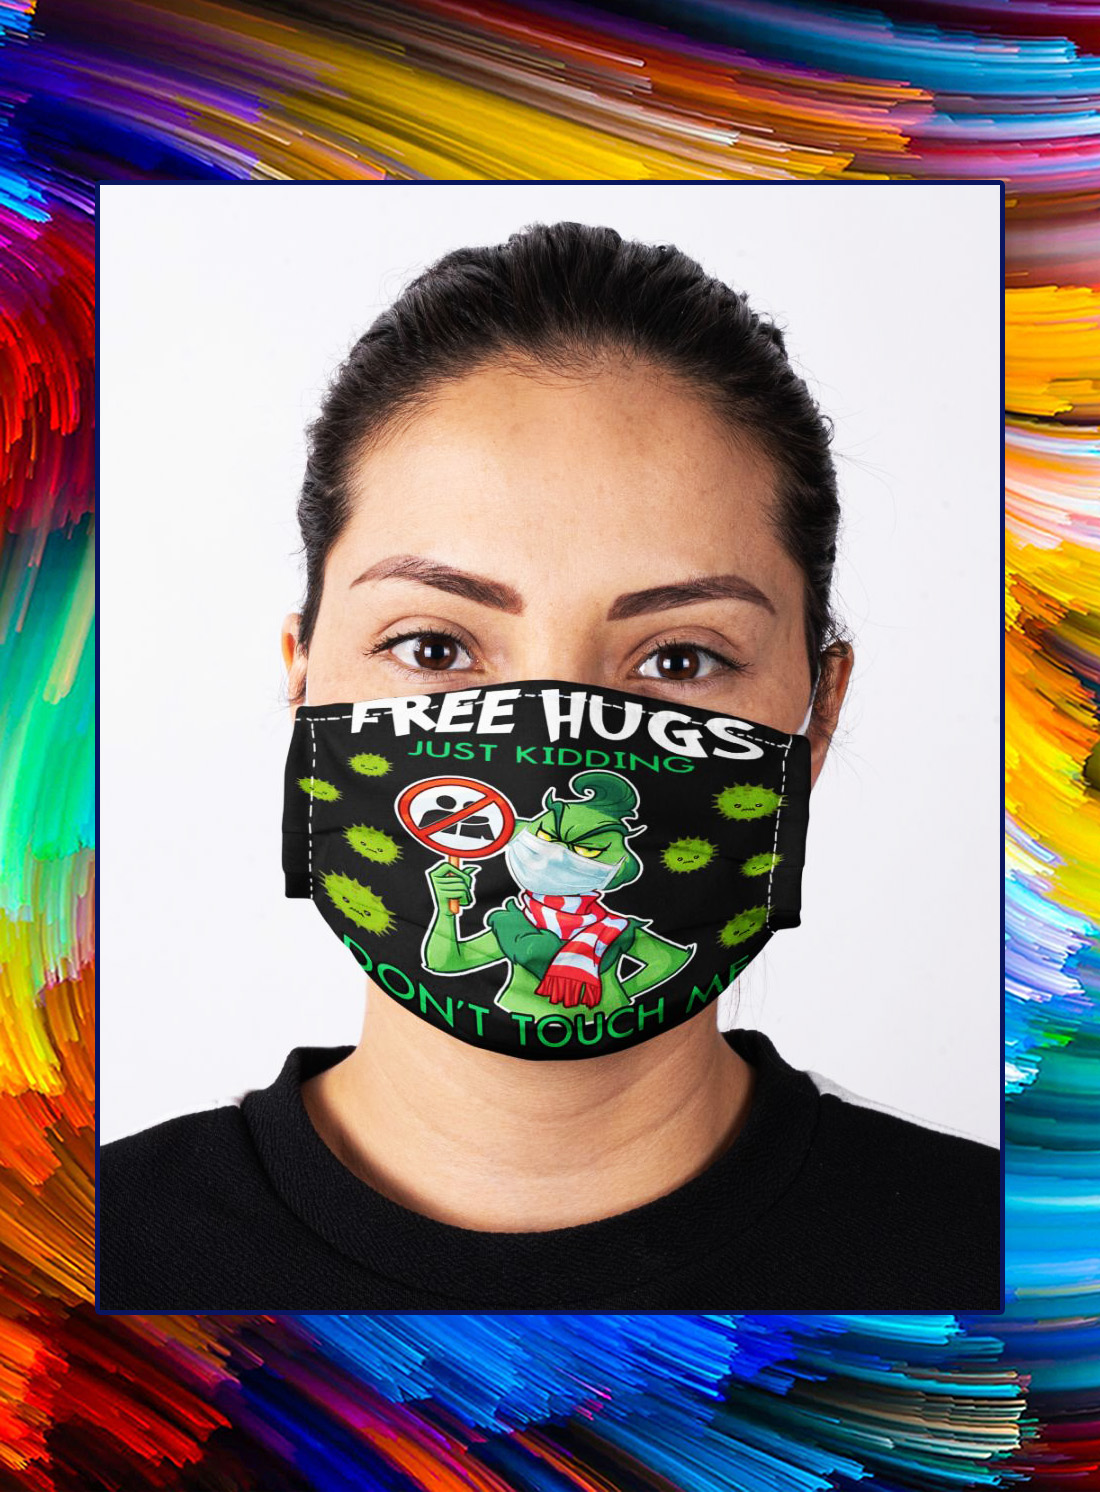 Grinch free hugs just kidding don't touch me face mask - Picture 1